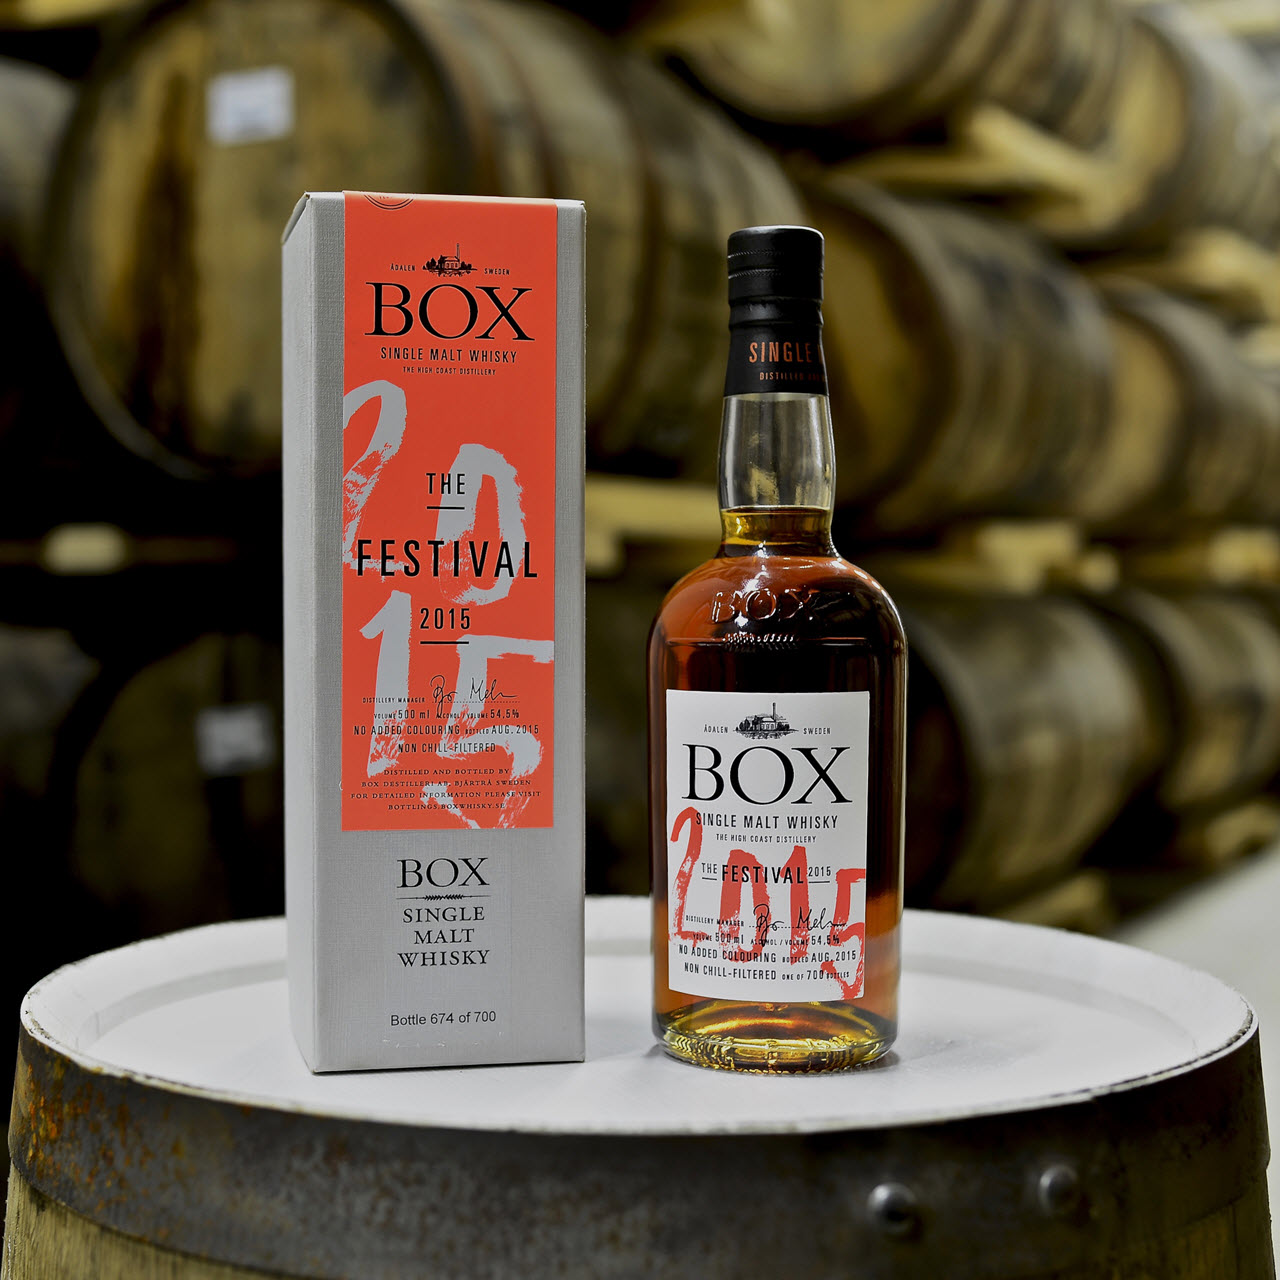 Box Whisky The Festival 2015